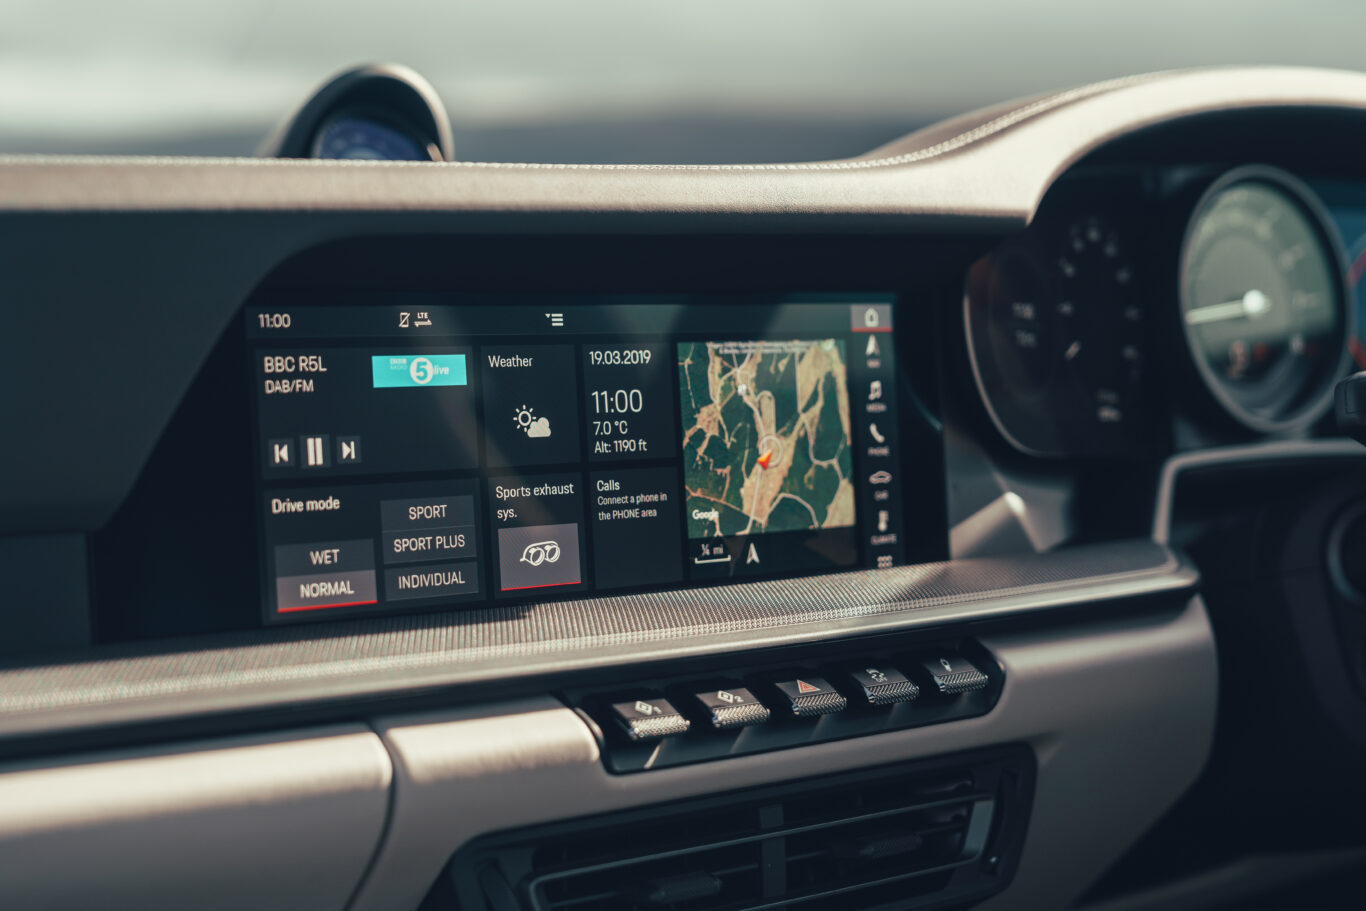 A new infotainment system is easy and simple to use